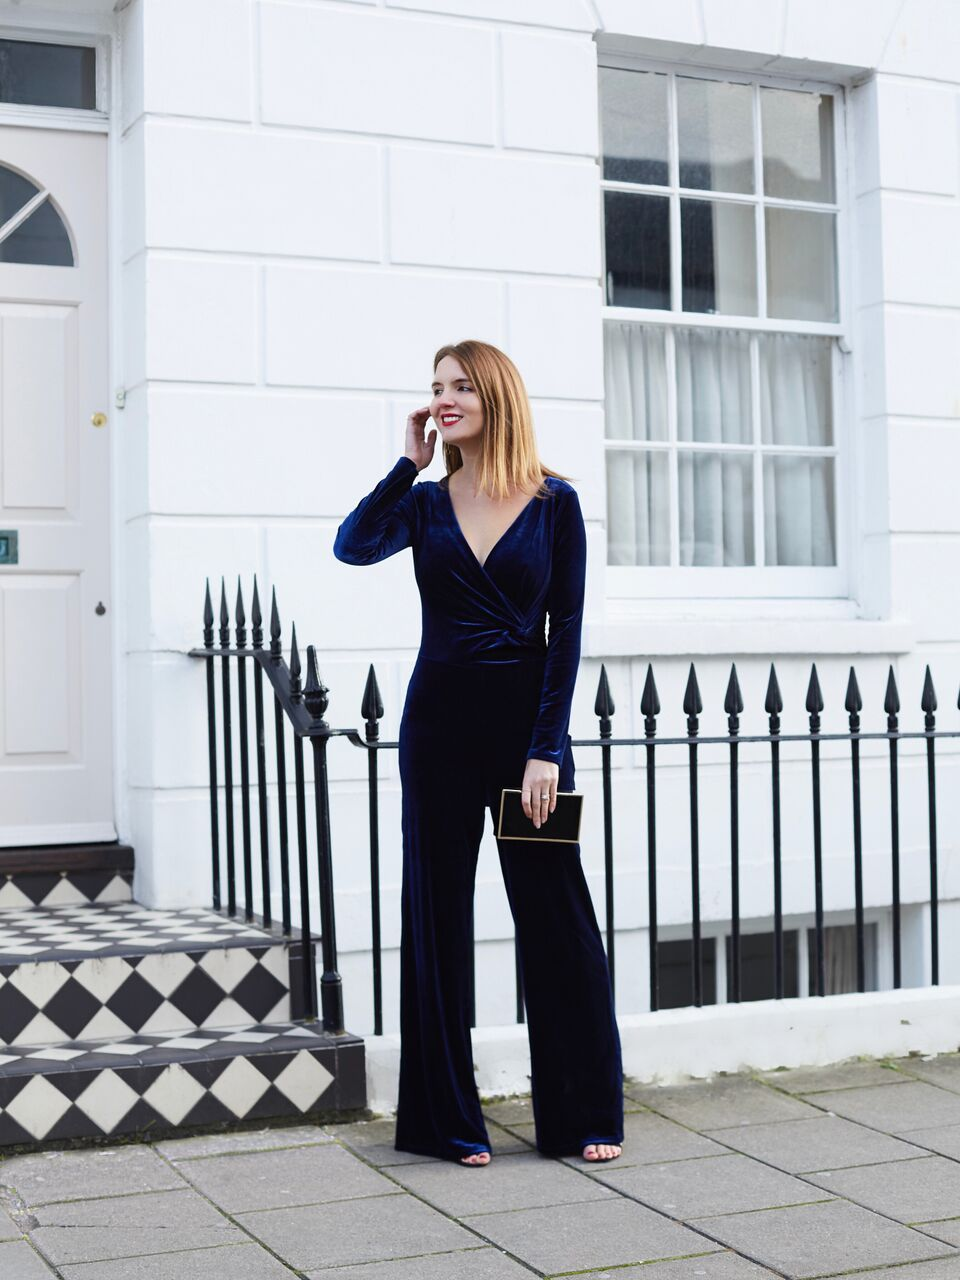 THE GROWN UP EDIT - Finery Blue Velvet Jumpsuit